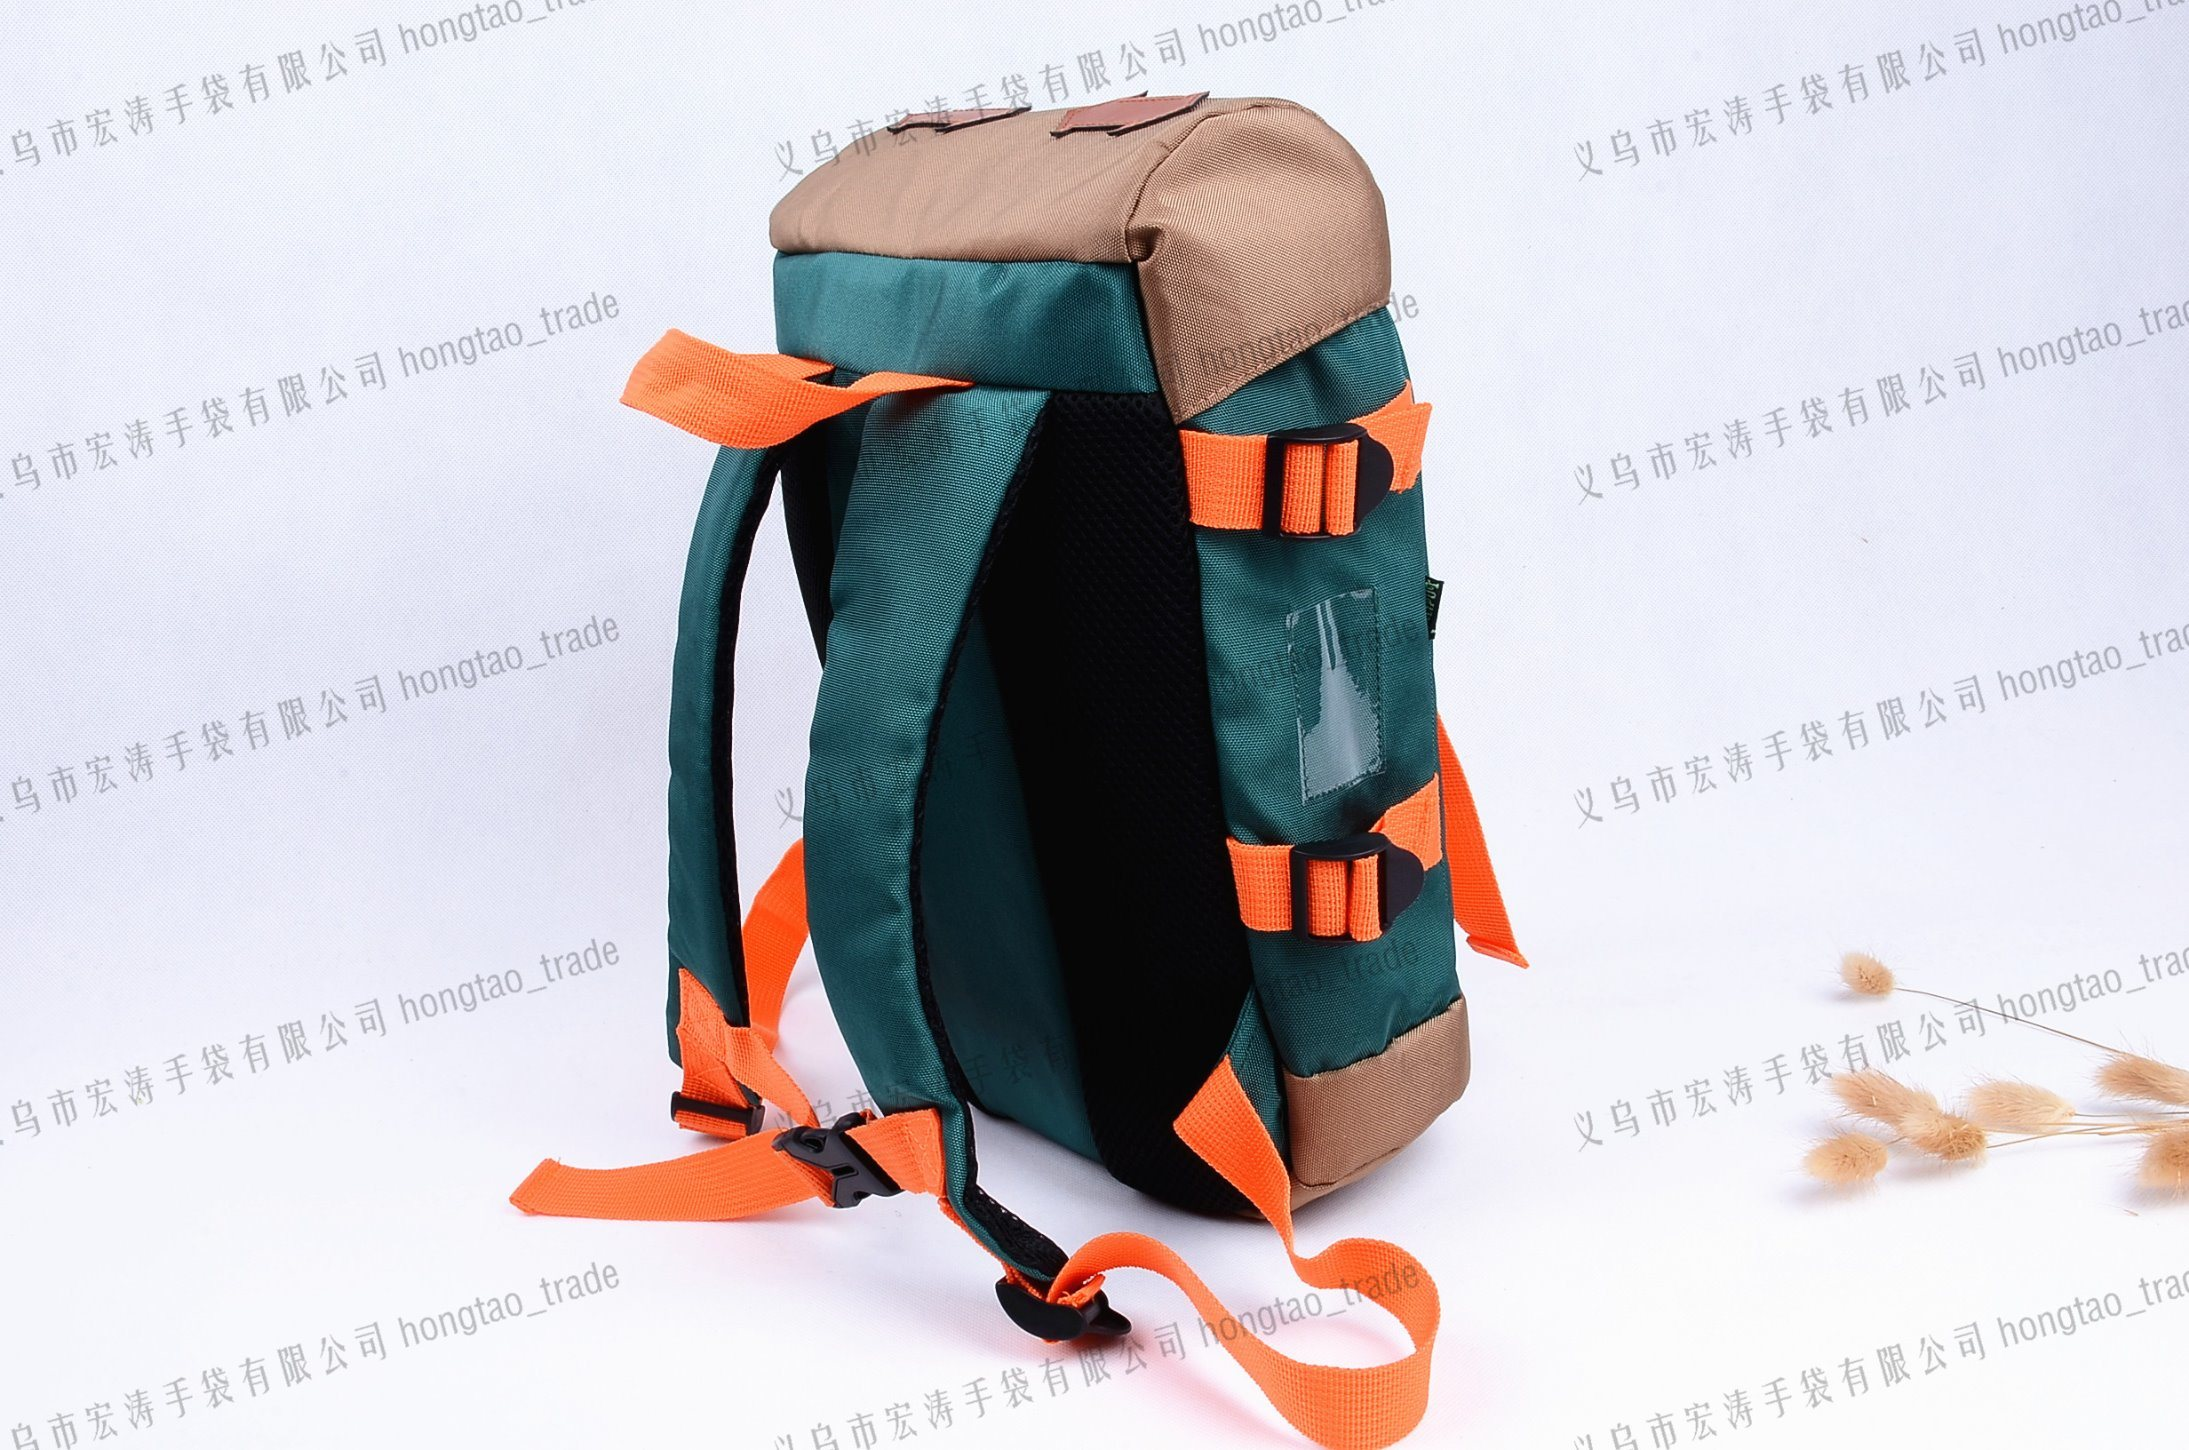 900d Nylon Waterproof Korean Style School Cover Bag Backpack